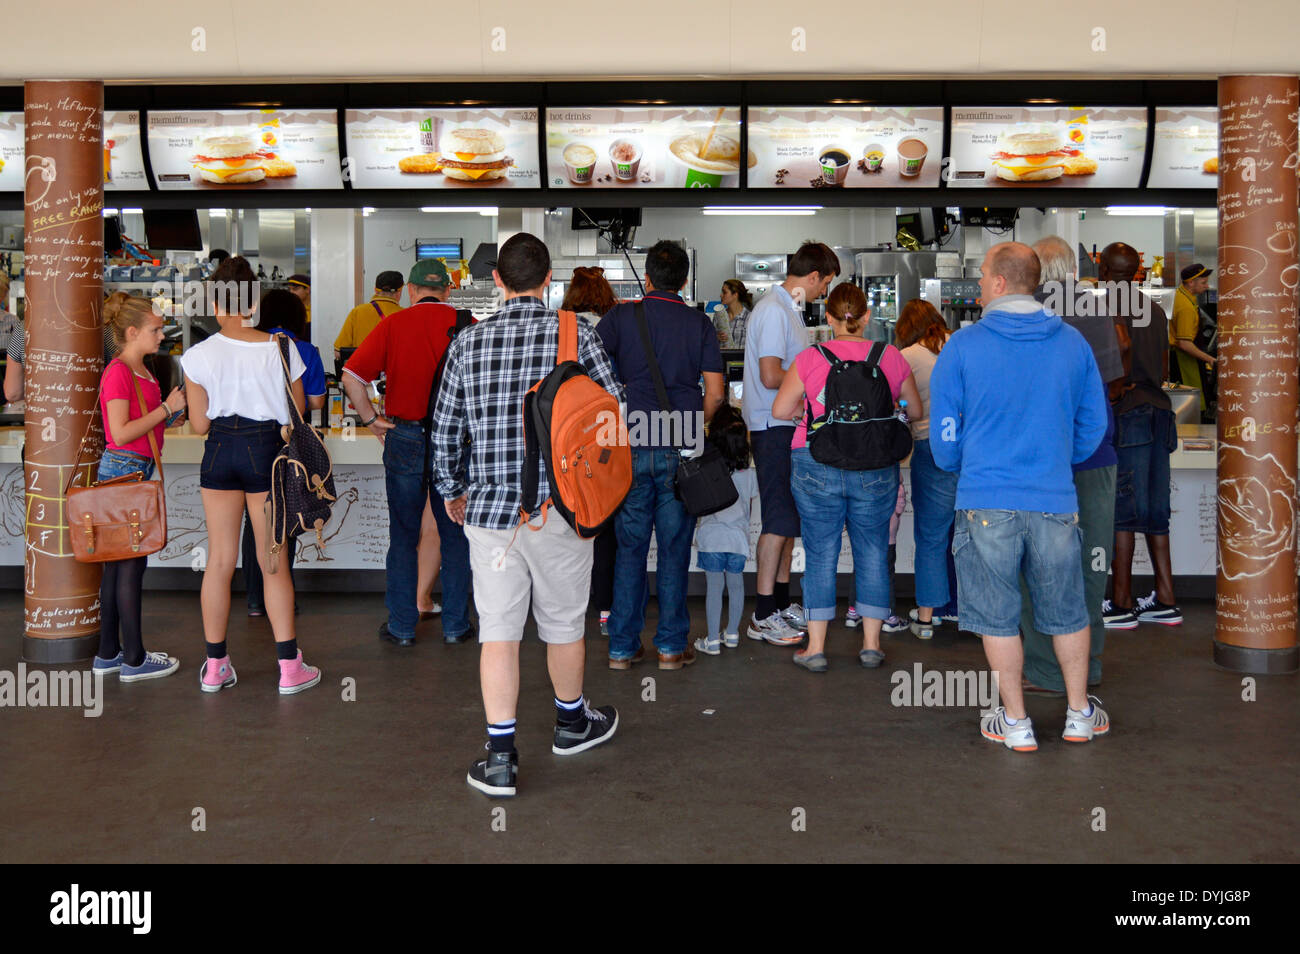 Interior view of McDonalds fast food restaurant people waiting at counter to be served London 2012 Olympic Park Stratford Newham London England UK - Stock Image